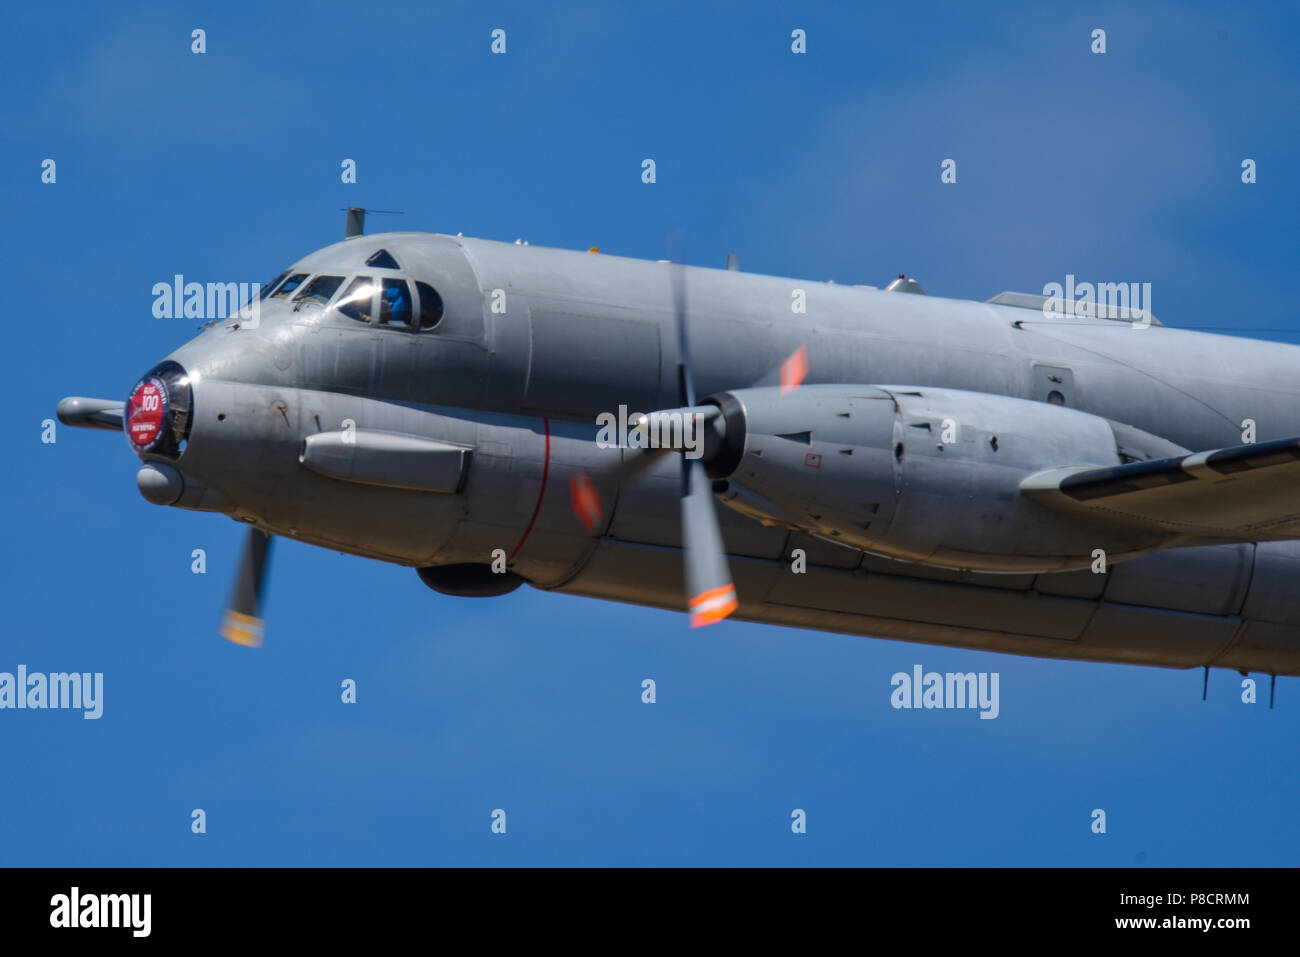 French Breguet Br.1150 Atlantic is a long-range maritime patrol aircraft at the Royal International Air Tattoo, RIAT 2018, RAF Fairford, Gloucestershire, UK - Stock Image